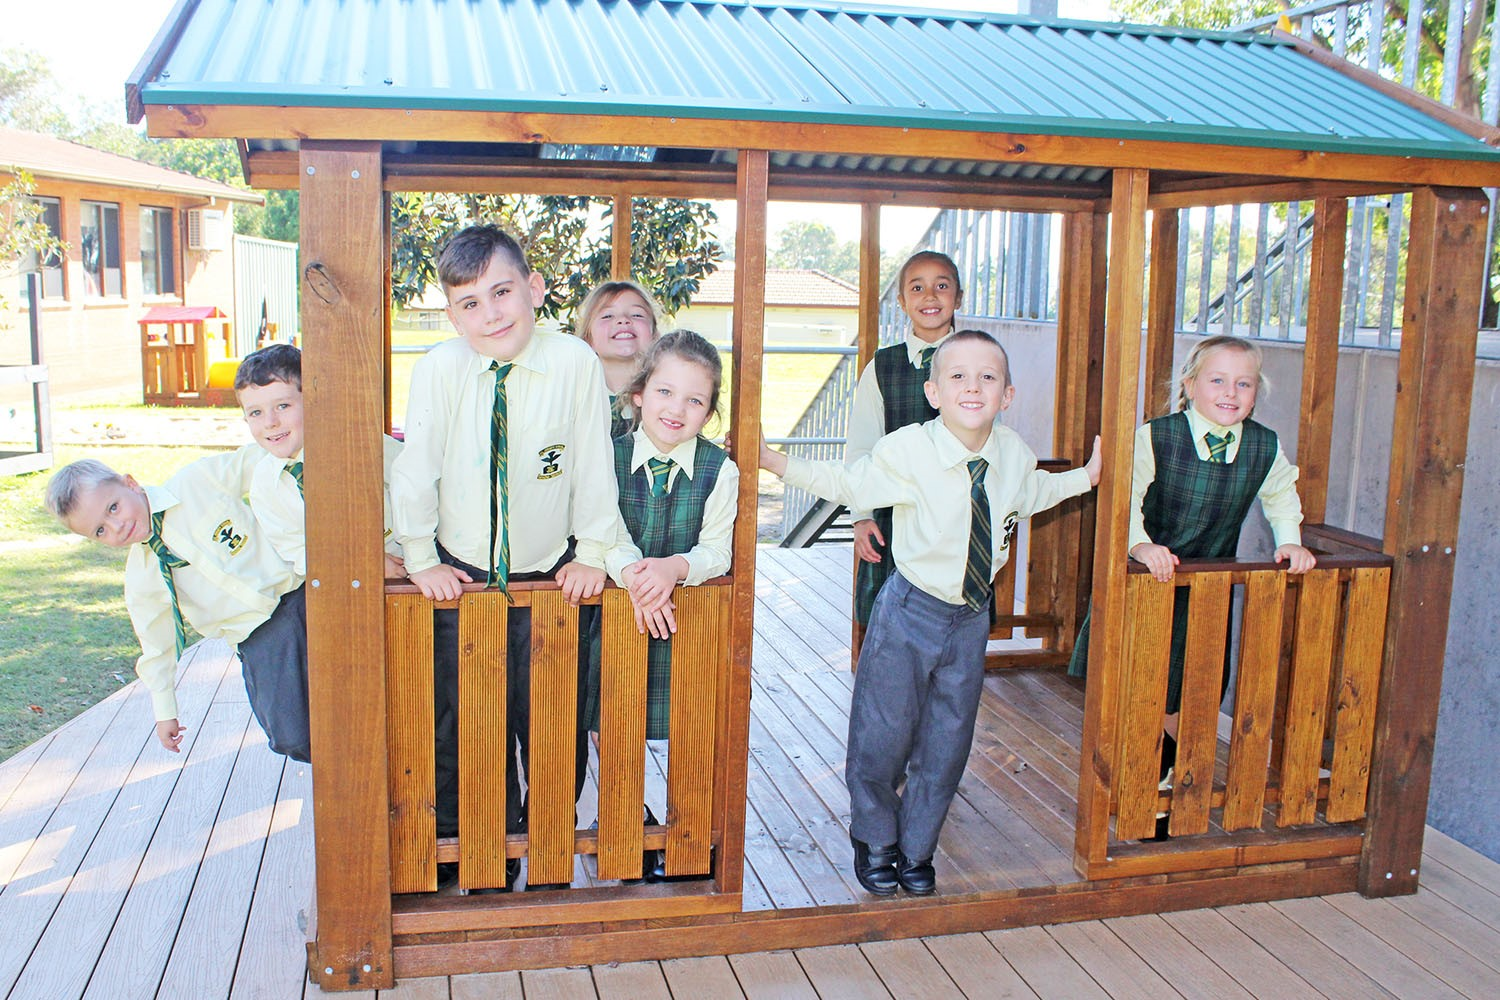 Image:GALLERY: New dynamic outdoor play environments for our schools